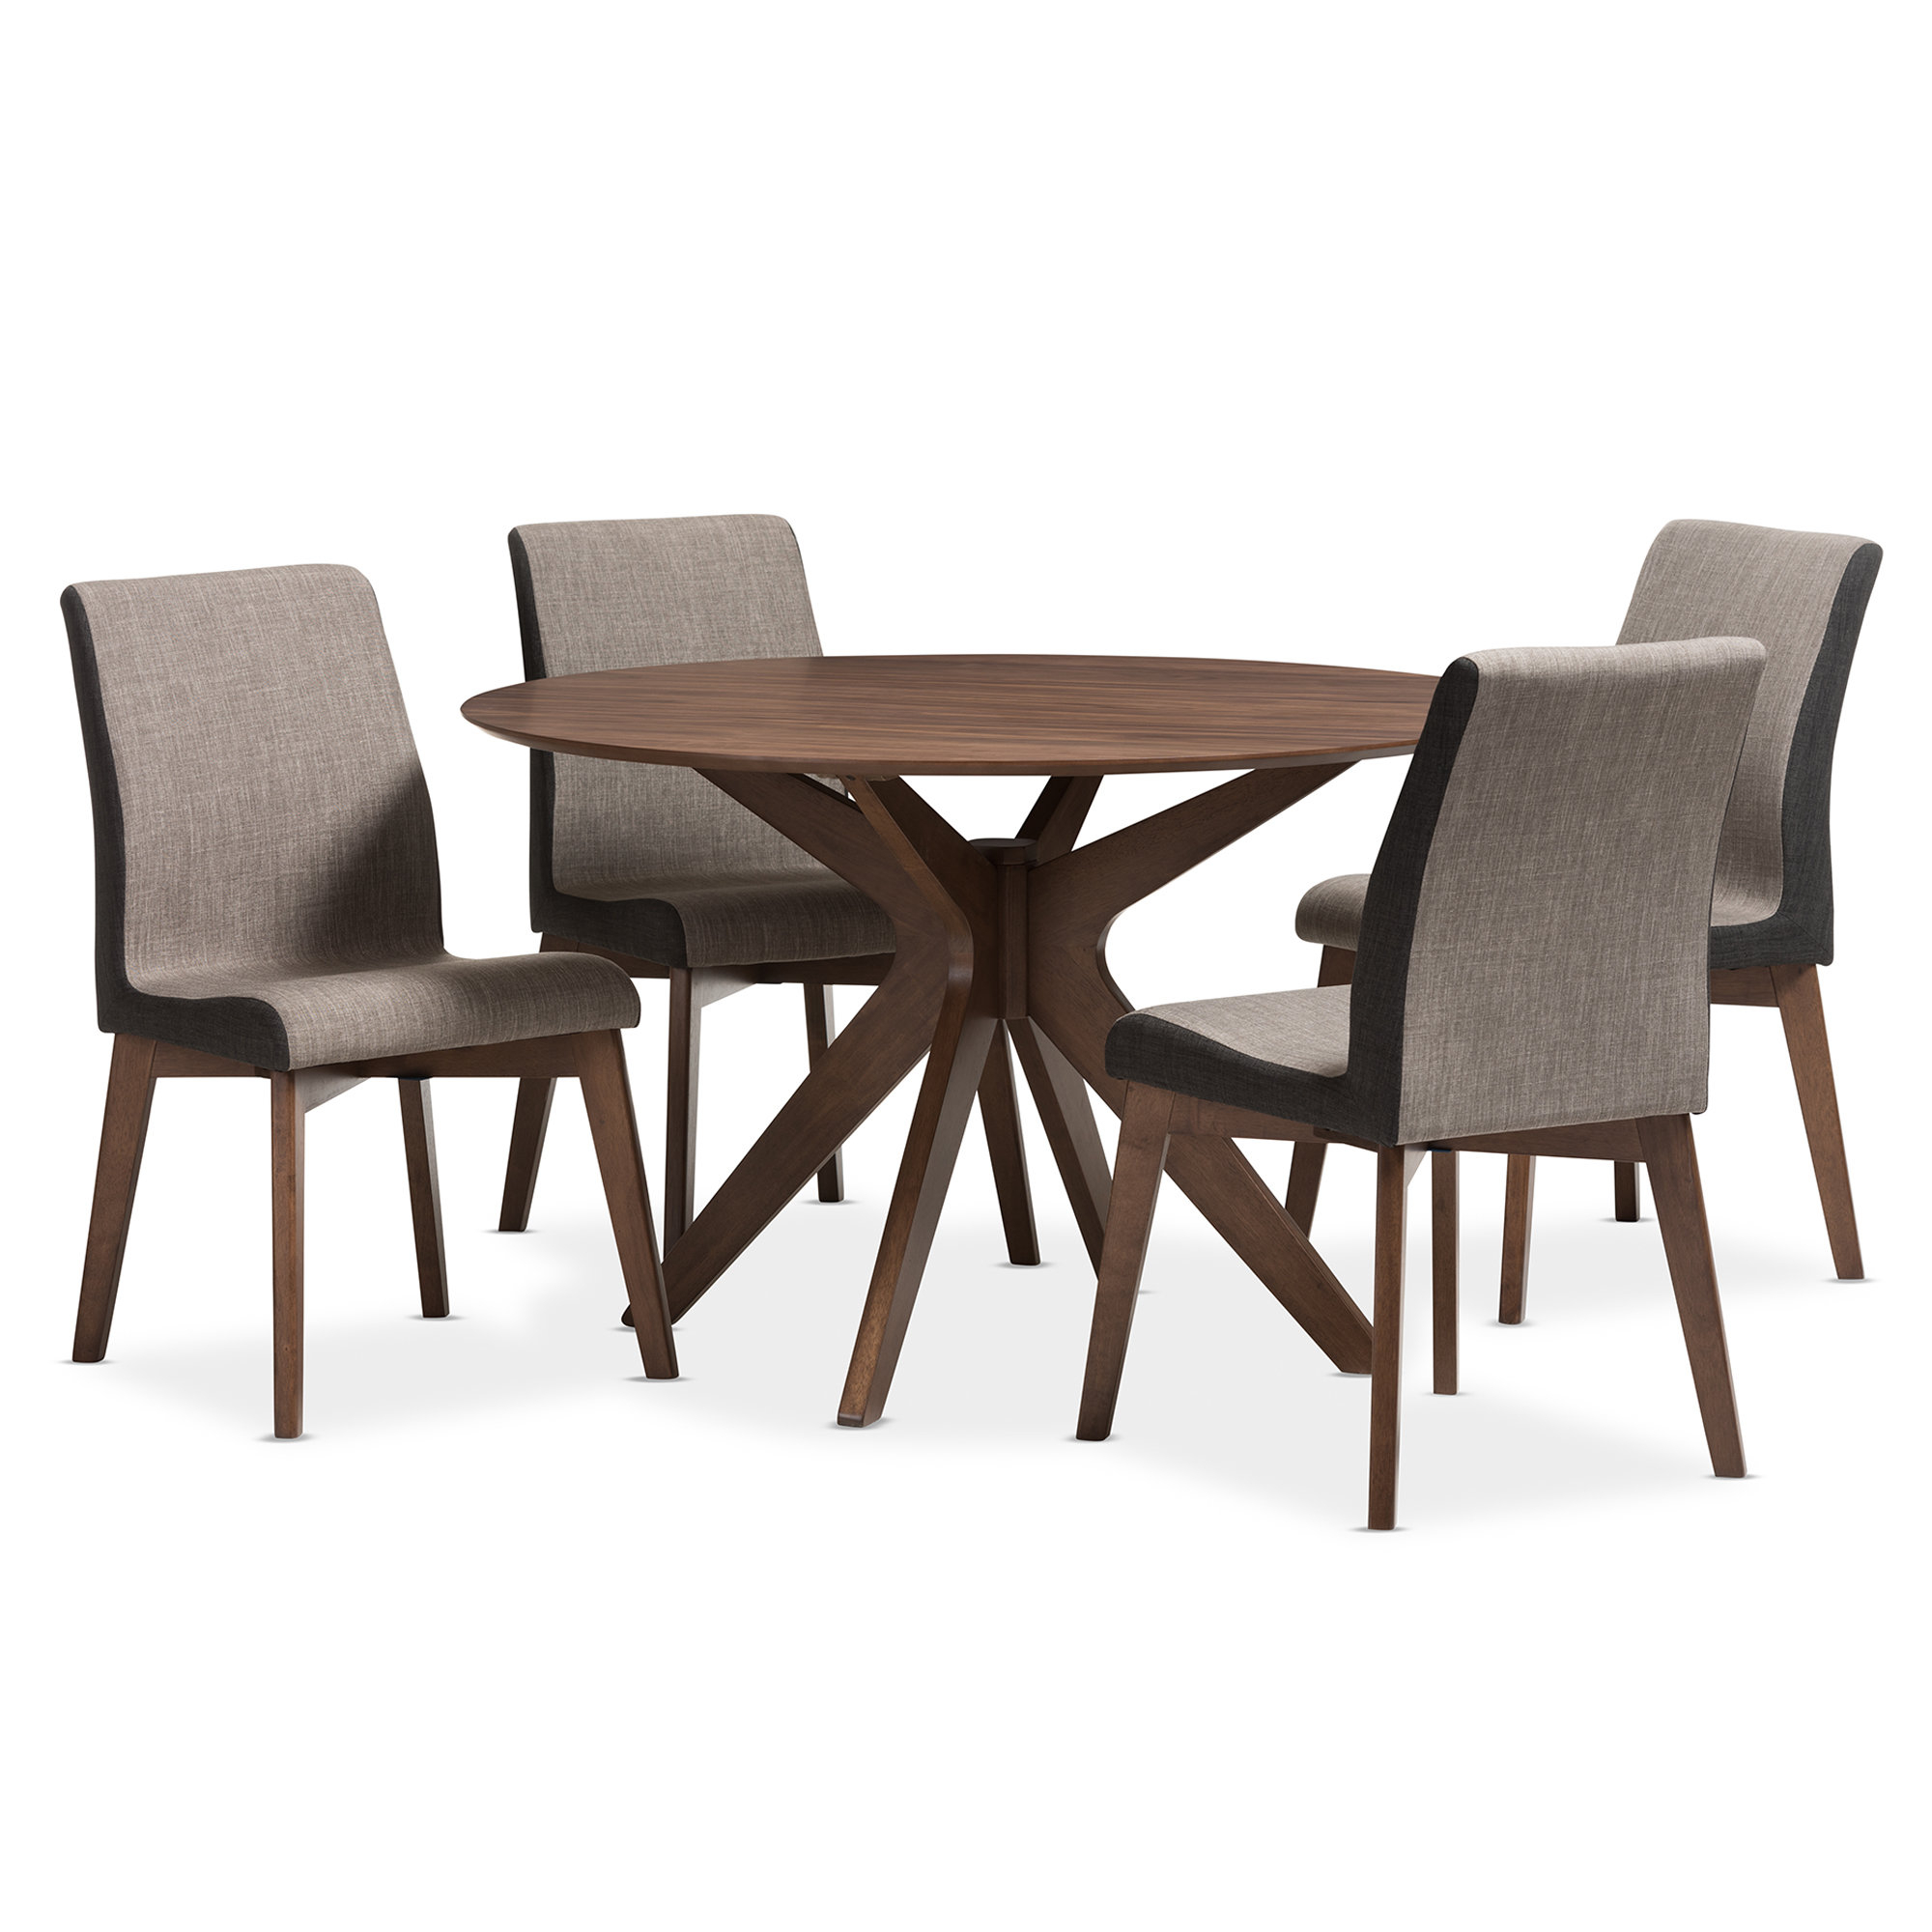 Allmodern With Regard To Evellen 5 Piece Solid Wood Dining Sets (Set Of 5) (View 16 of 25)